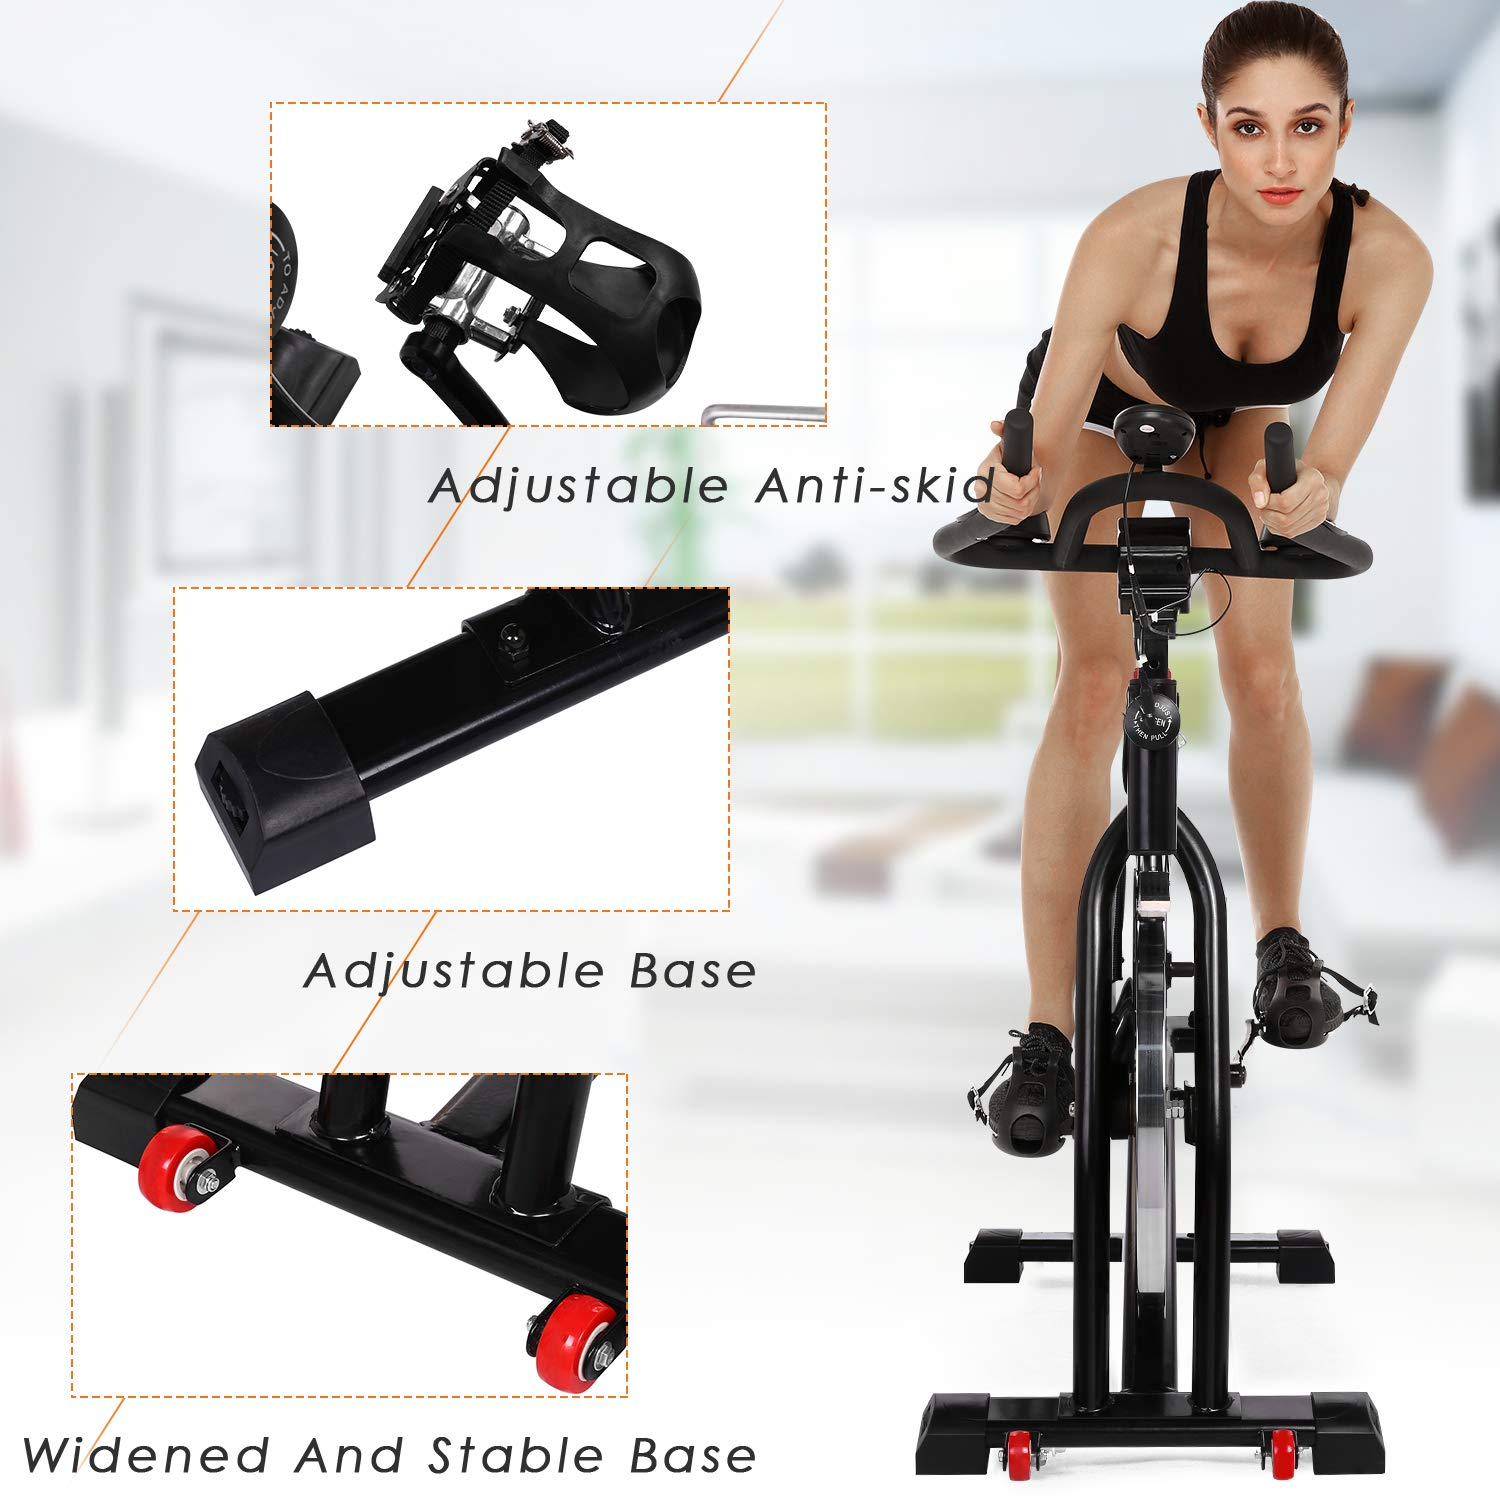 ANCHEER Stationary Bike, 40 LBS Flywheel Belt Drive Indoor Cycling Exercise Bike with Pulse, Elbow Tray (Model: ANCHEER-A5001) (Black) by ANCHEER (Image #6)